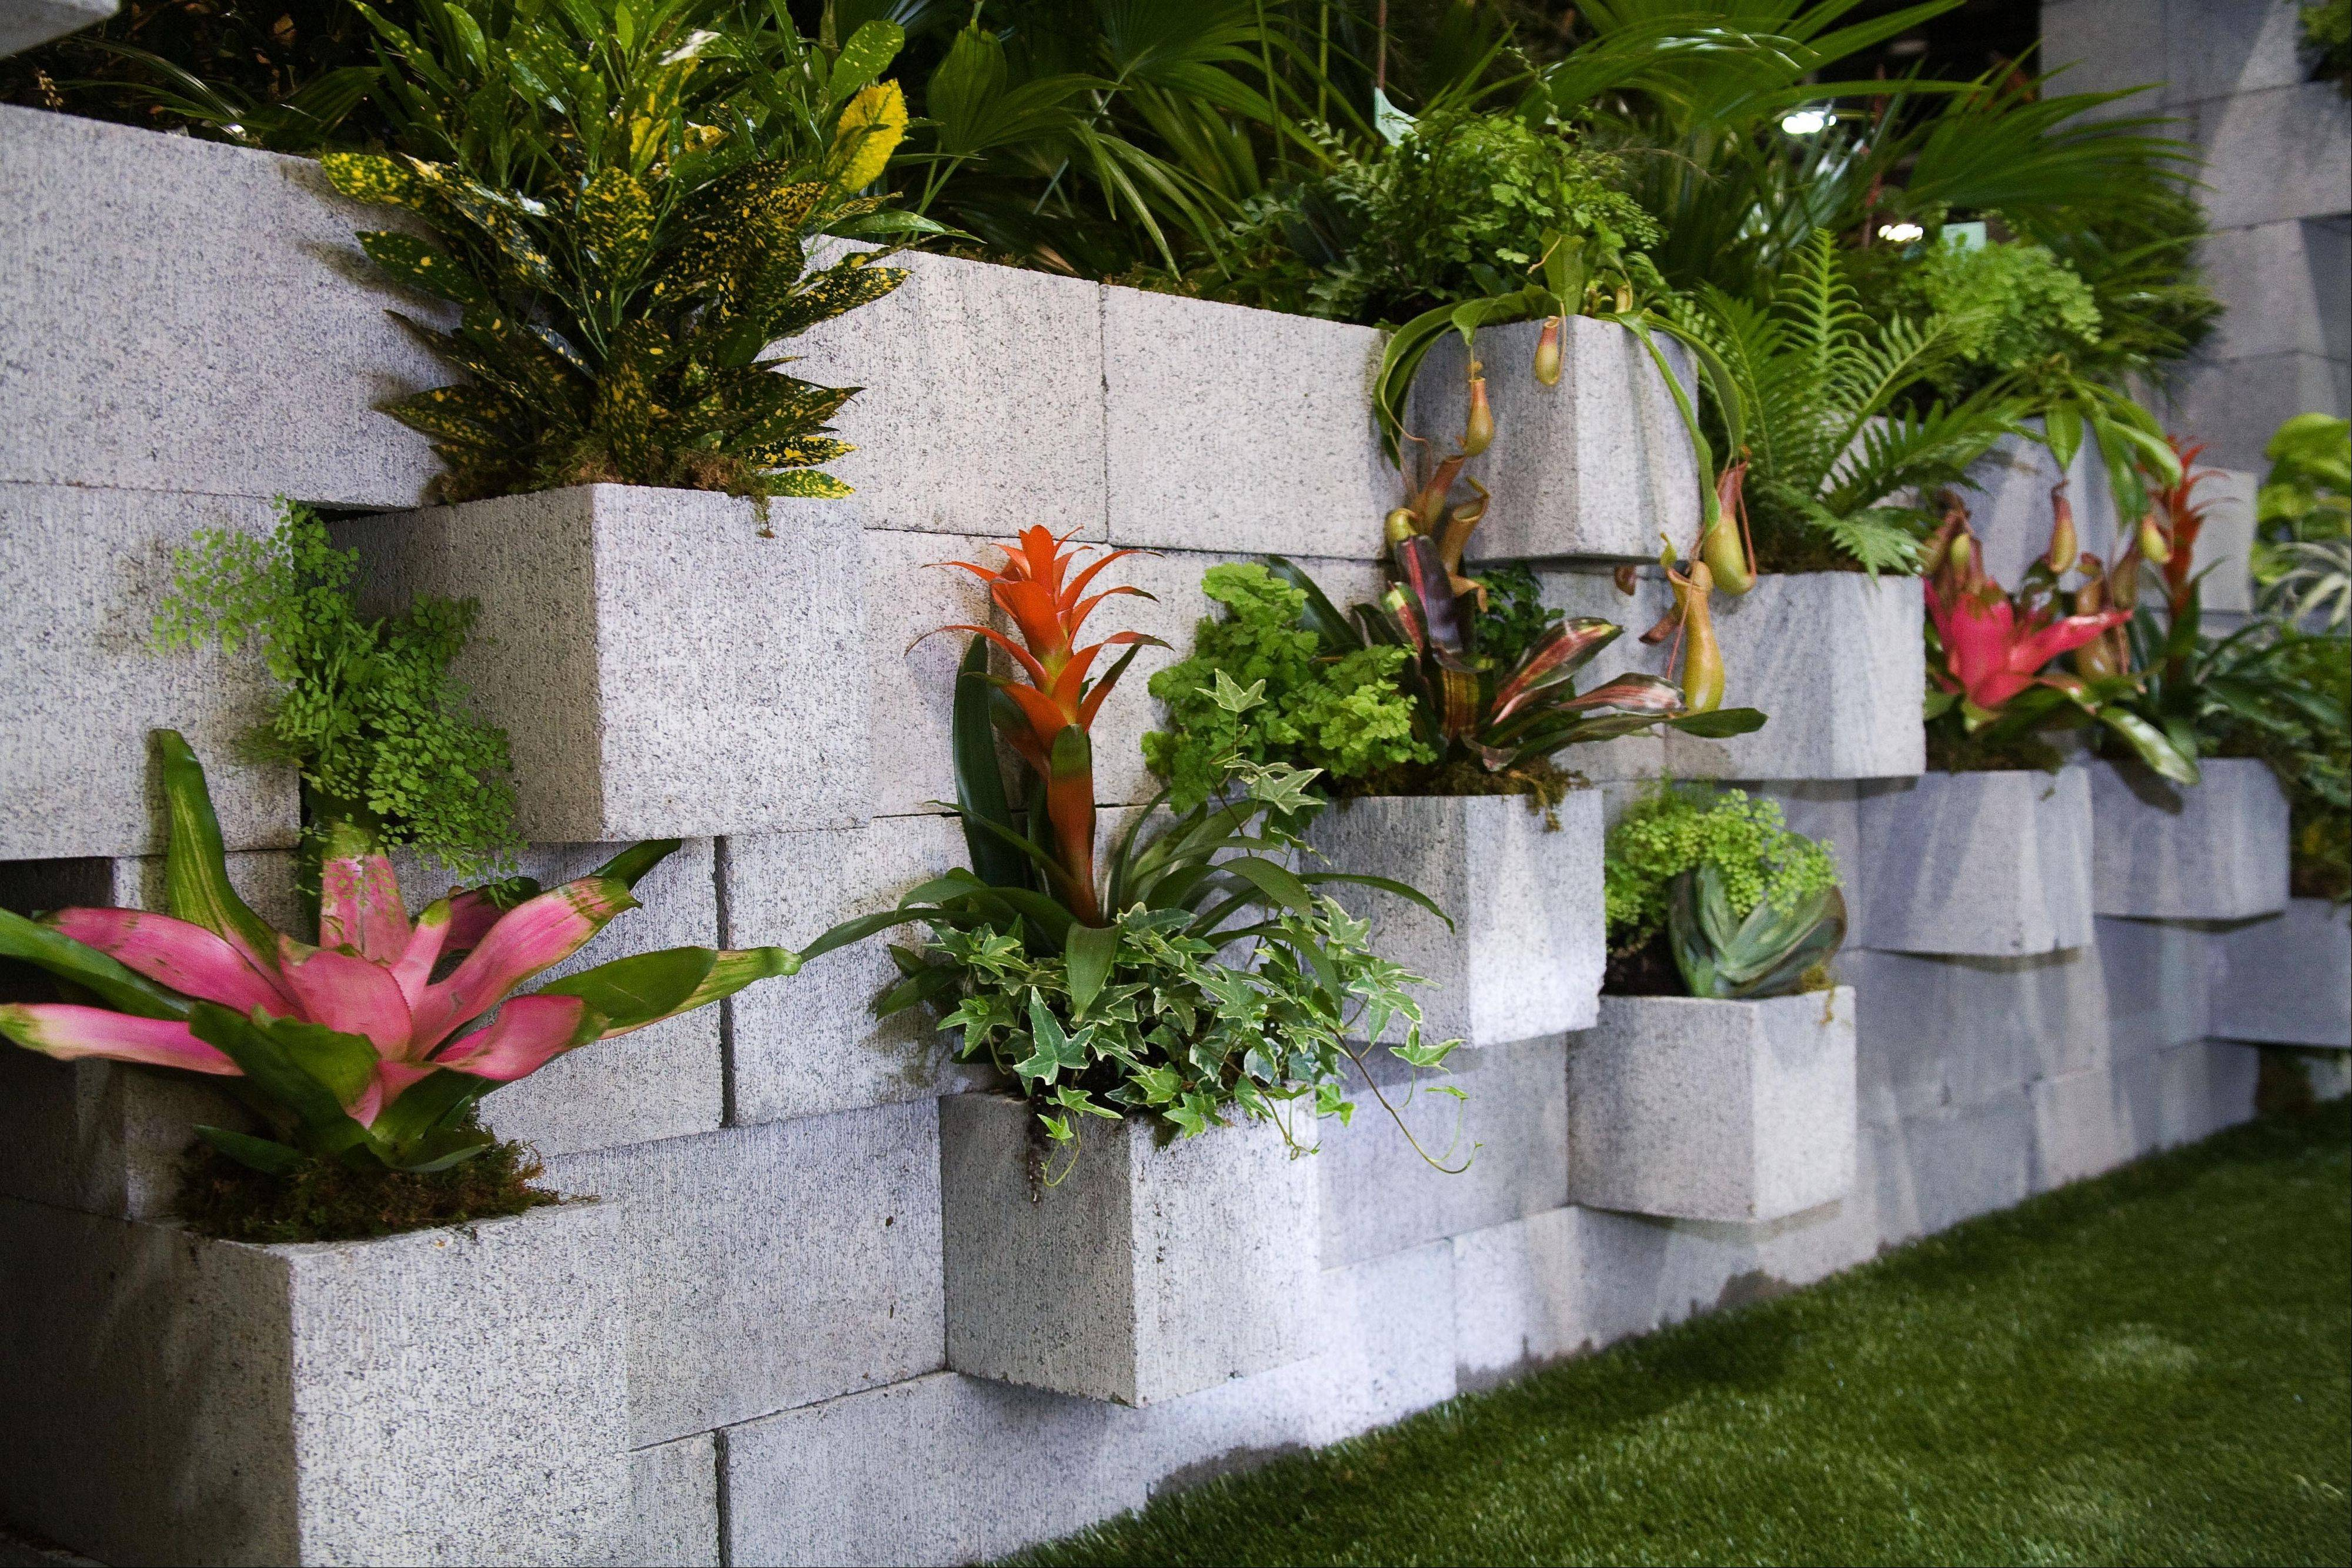 "In this publicity photo provided by Chris H. Olsen, the Landscape Designer, Olsen, of Little Rock, Ark., created a decorative wall out of concrete blocks planted with ivy and tropical plants. Cement couches, benches and tables also can be made by stacking concrete blocks. ìYou don't even have to mortar it, î he says. Olsen shares more outdoor decorating ideas in his book ""Chris H. Olsen's Five Seasons"" (Leisure Arts, 2011)."